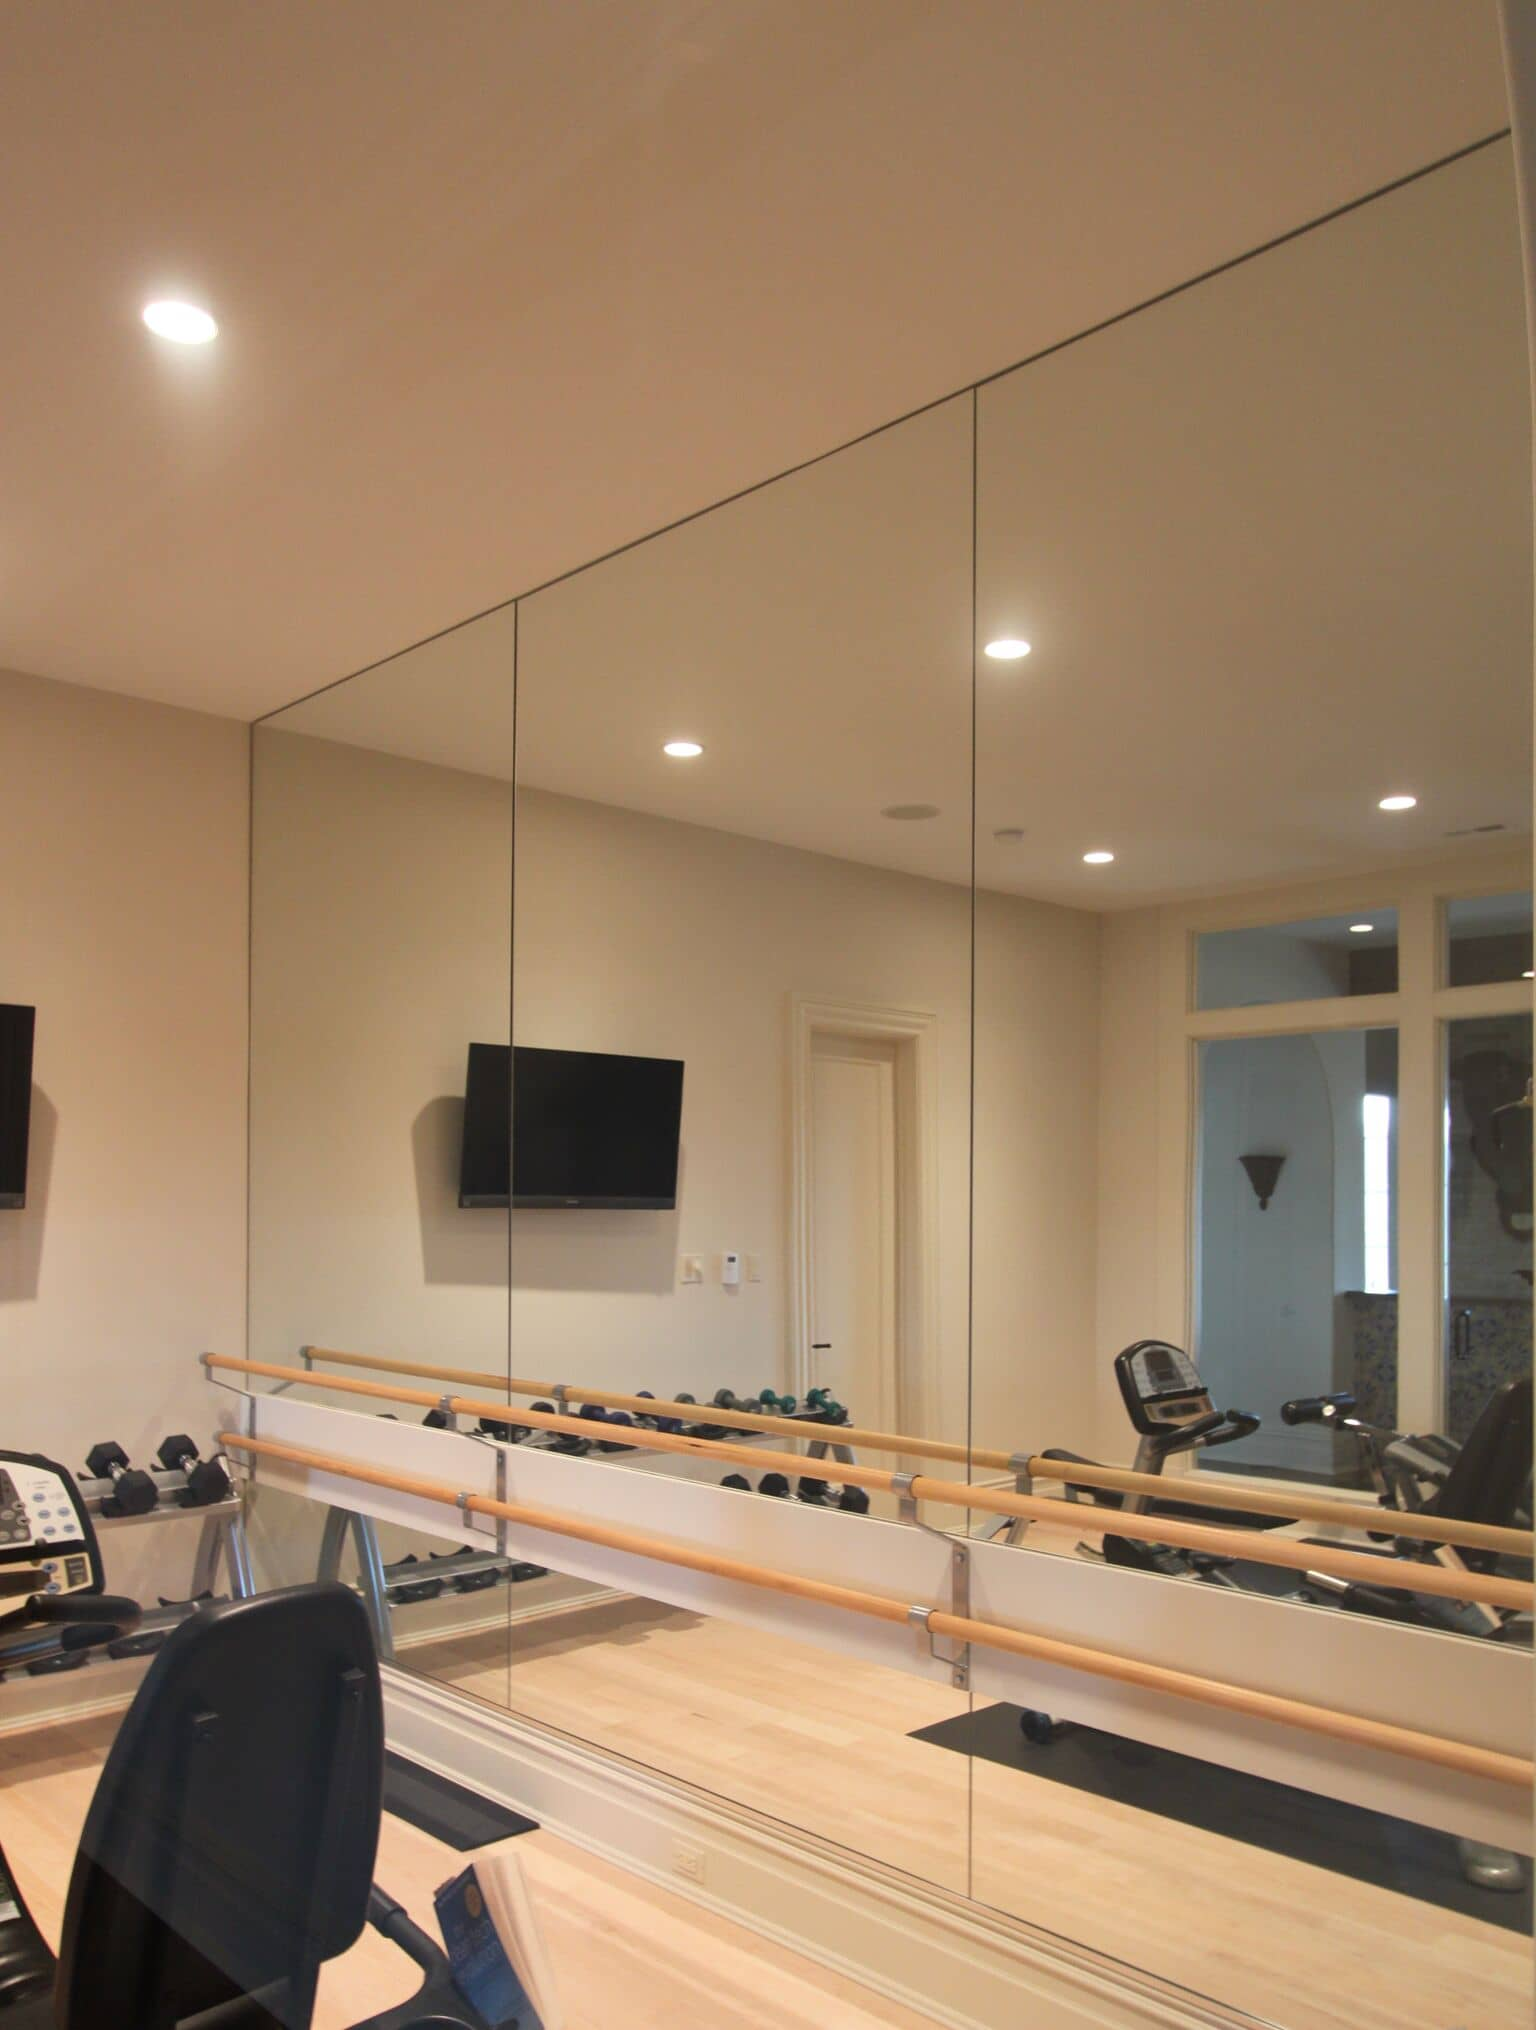 Exercise Room Mirrors 2.7.12-min